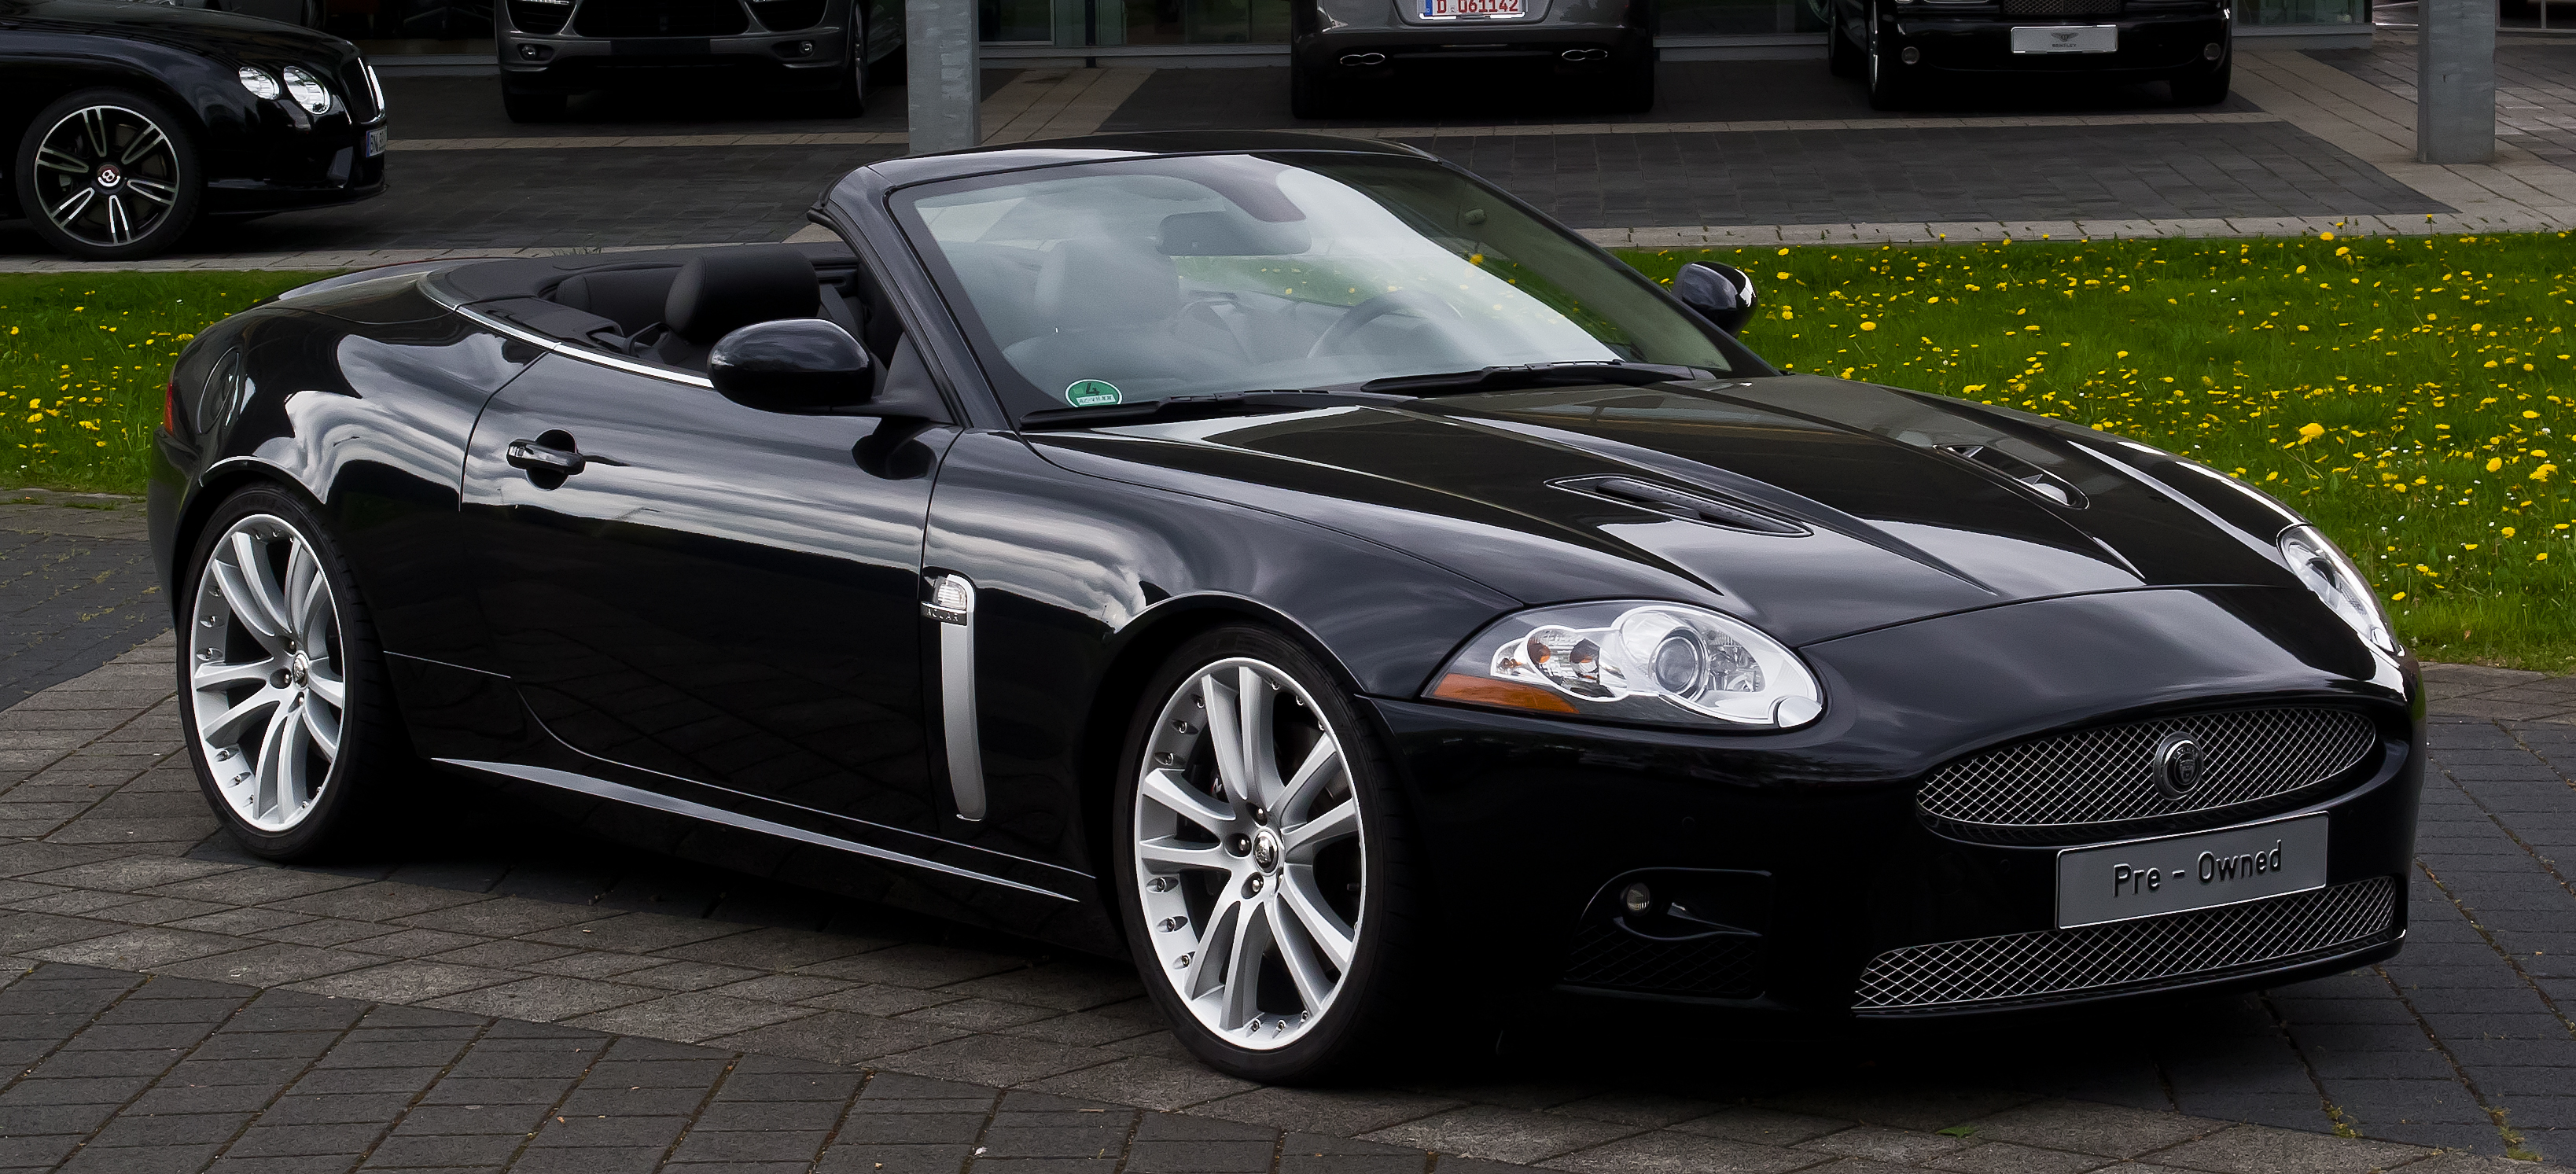 file jaguar xkr cabriolet x150 frontansicht 1 10 mai 2013 d wikimedia. Black Bedroom Furniture Sets. Home Design Ideas